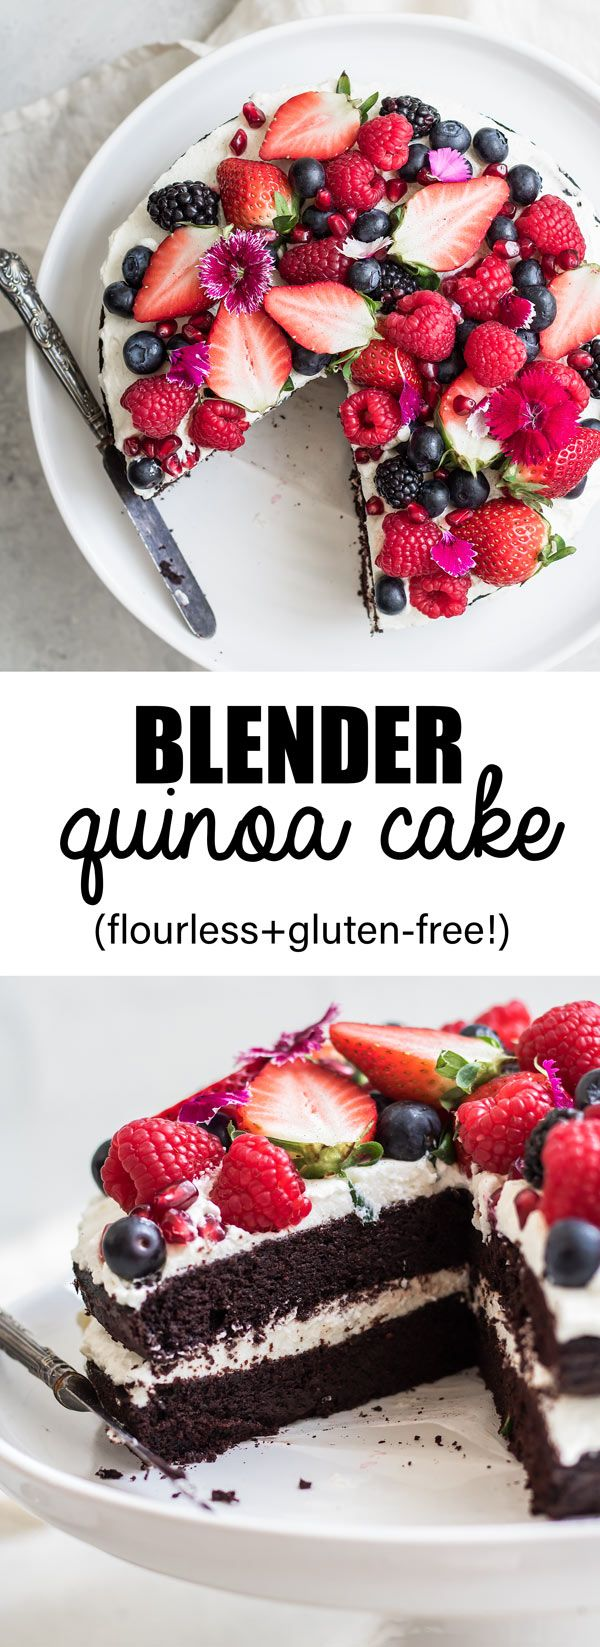 This blender chocolate quinoa cake is a delicious gluten-free cake that is made completely in your blender!